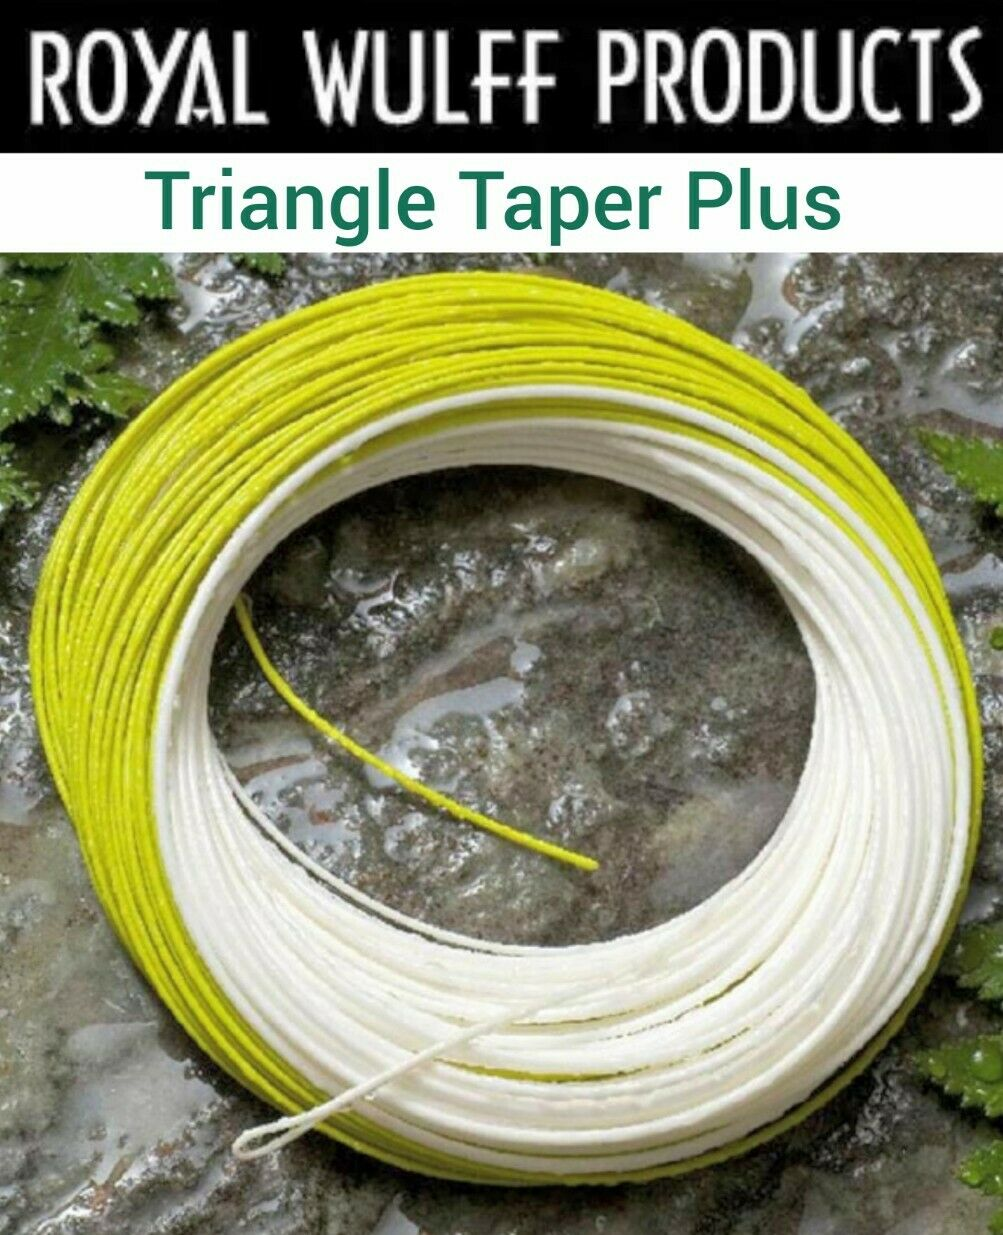 Royal Wulff TRIANGLE Taper PLUS Fly LINE WT 2-9 Floating J3 Coating Fly Fishing